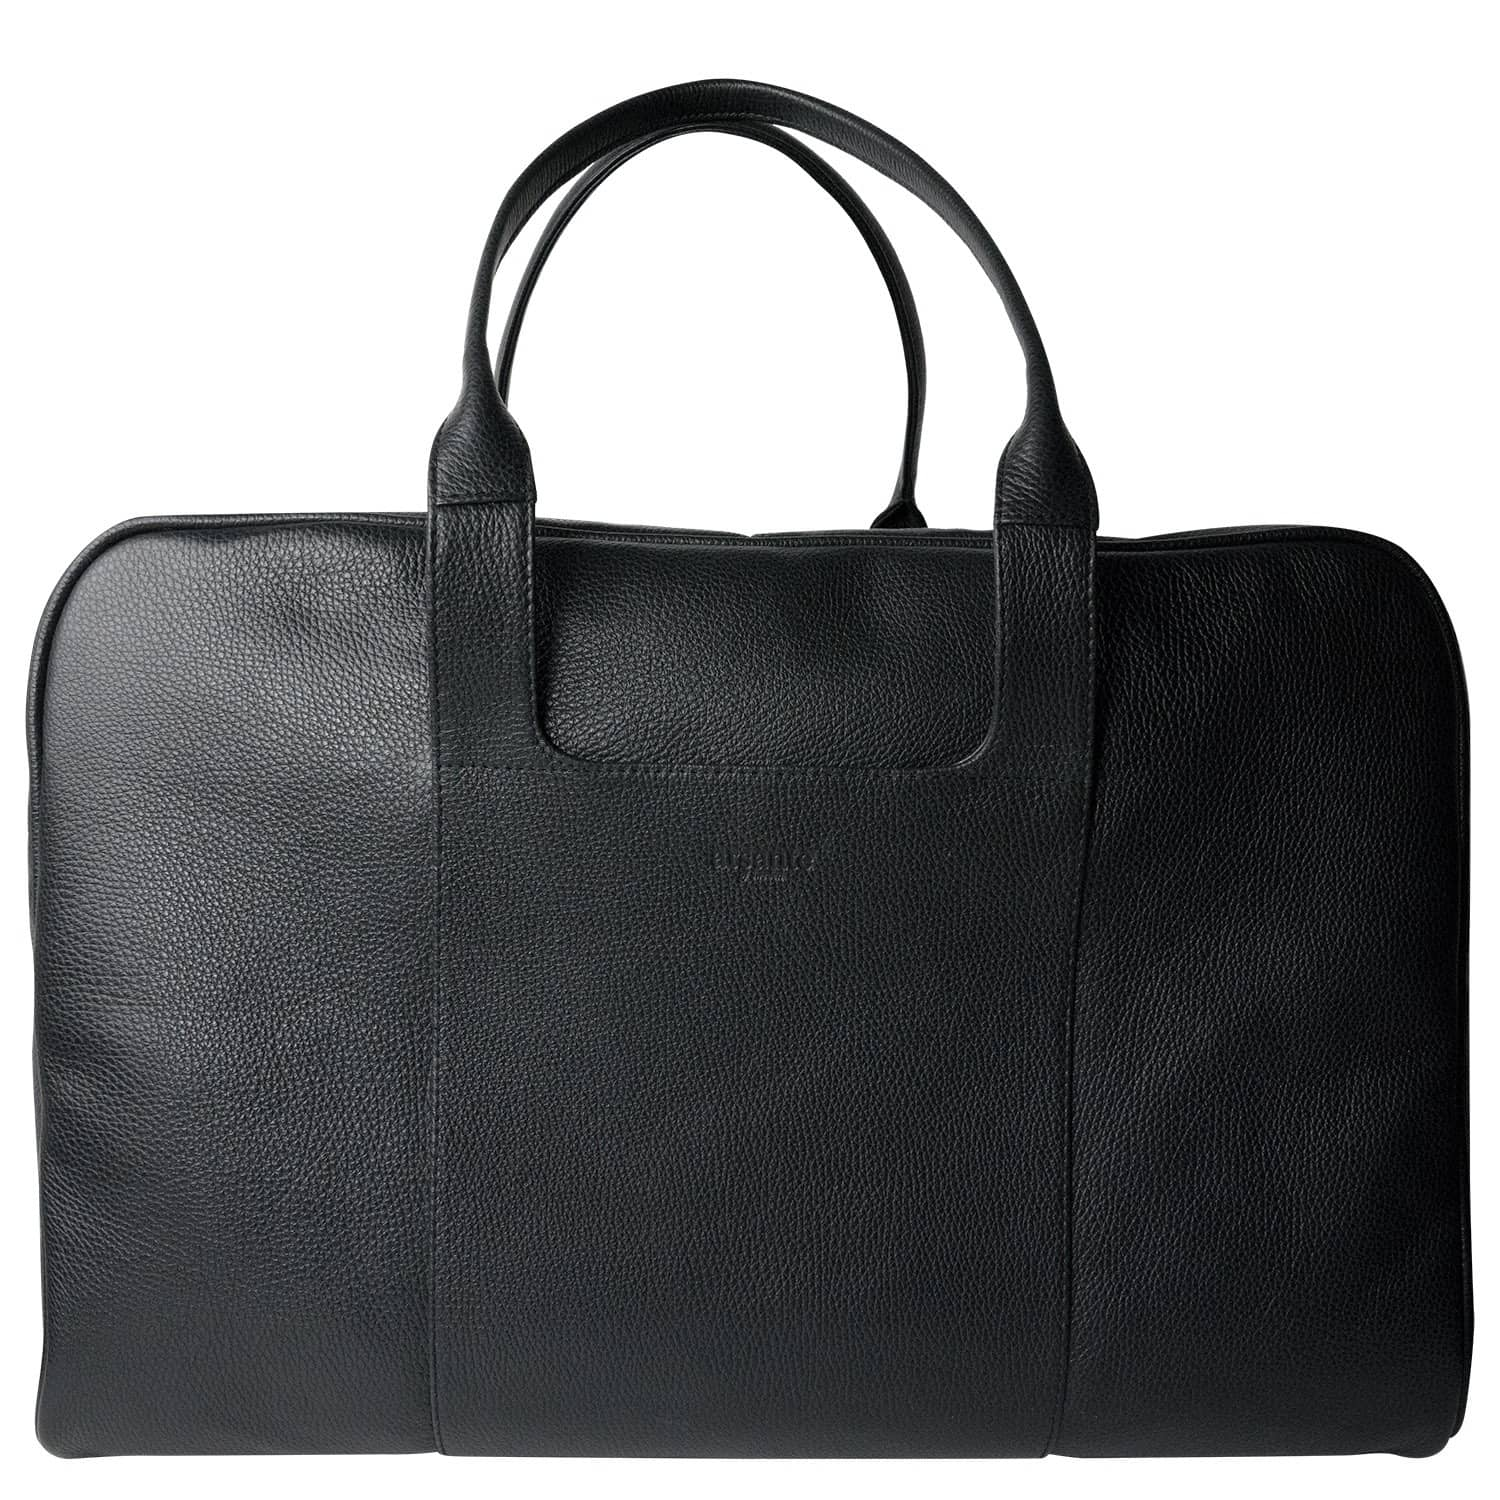 621128a2e6e Luxury Handmade Leather Weekend Bag | Arsante of Sweden | Wolf & Badger